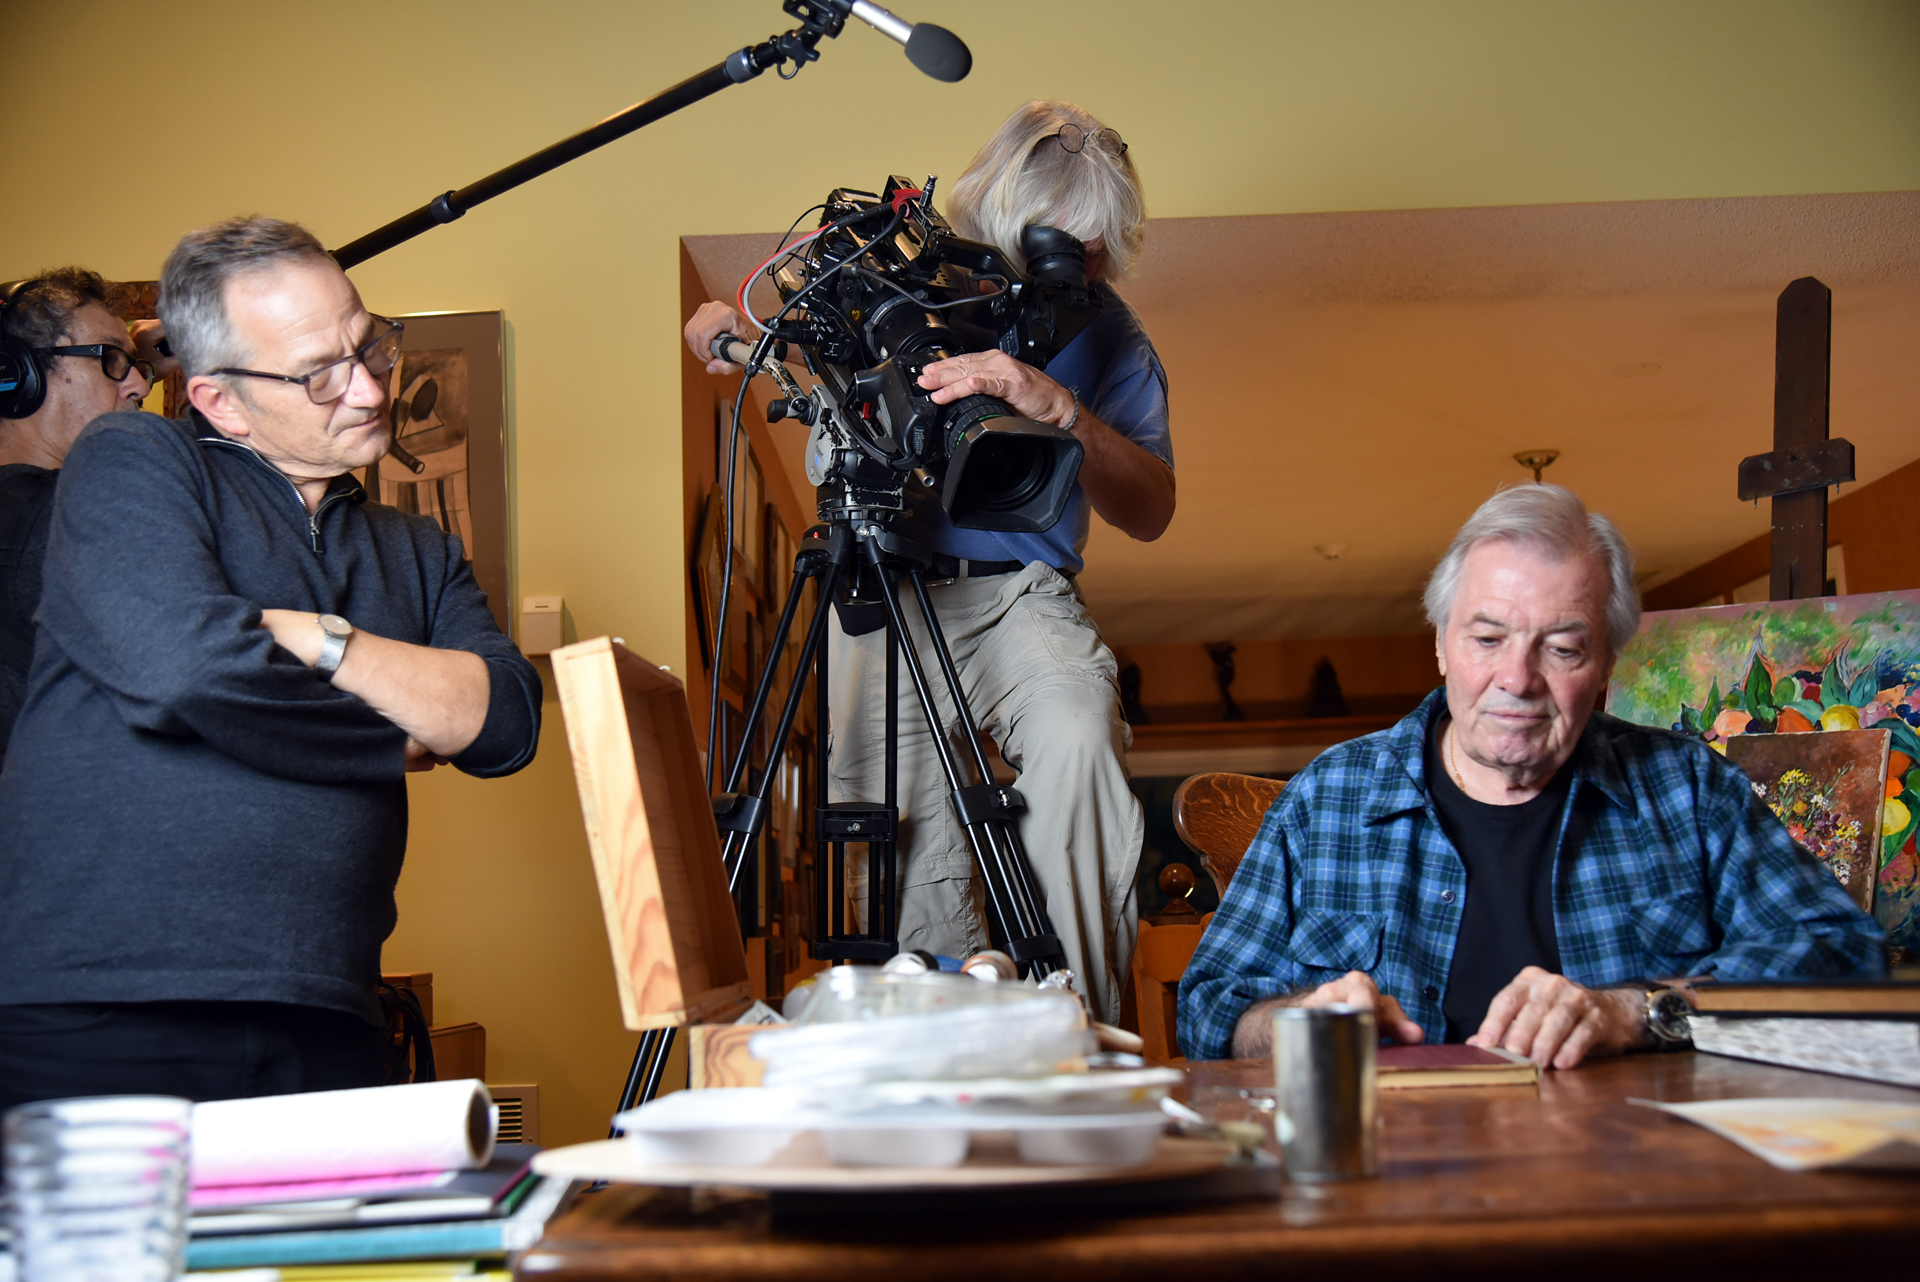 Jacques Pépin (R), director Peter L. Stein (L), director of photography Vicente Franco, and sound engineer Jose Araujo, during the filming of Pépin's American Masters documentary, 2016.